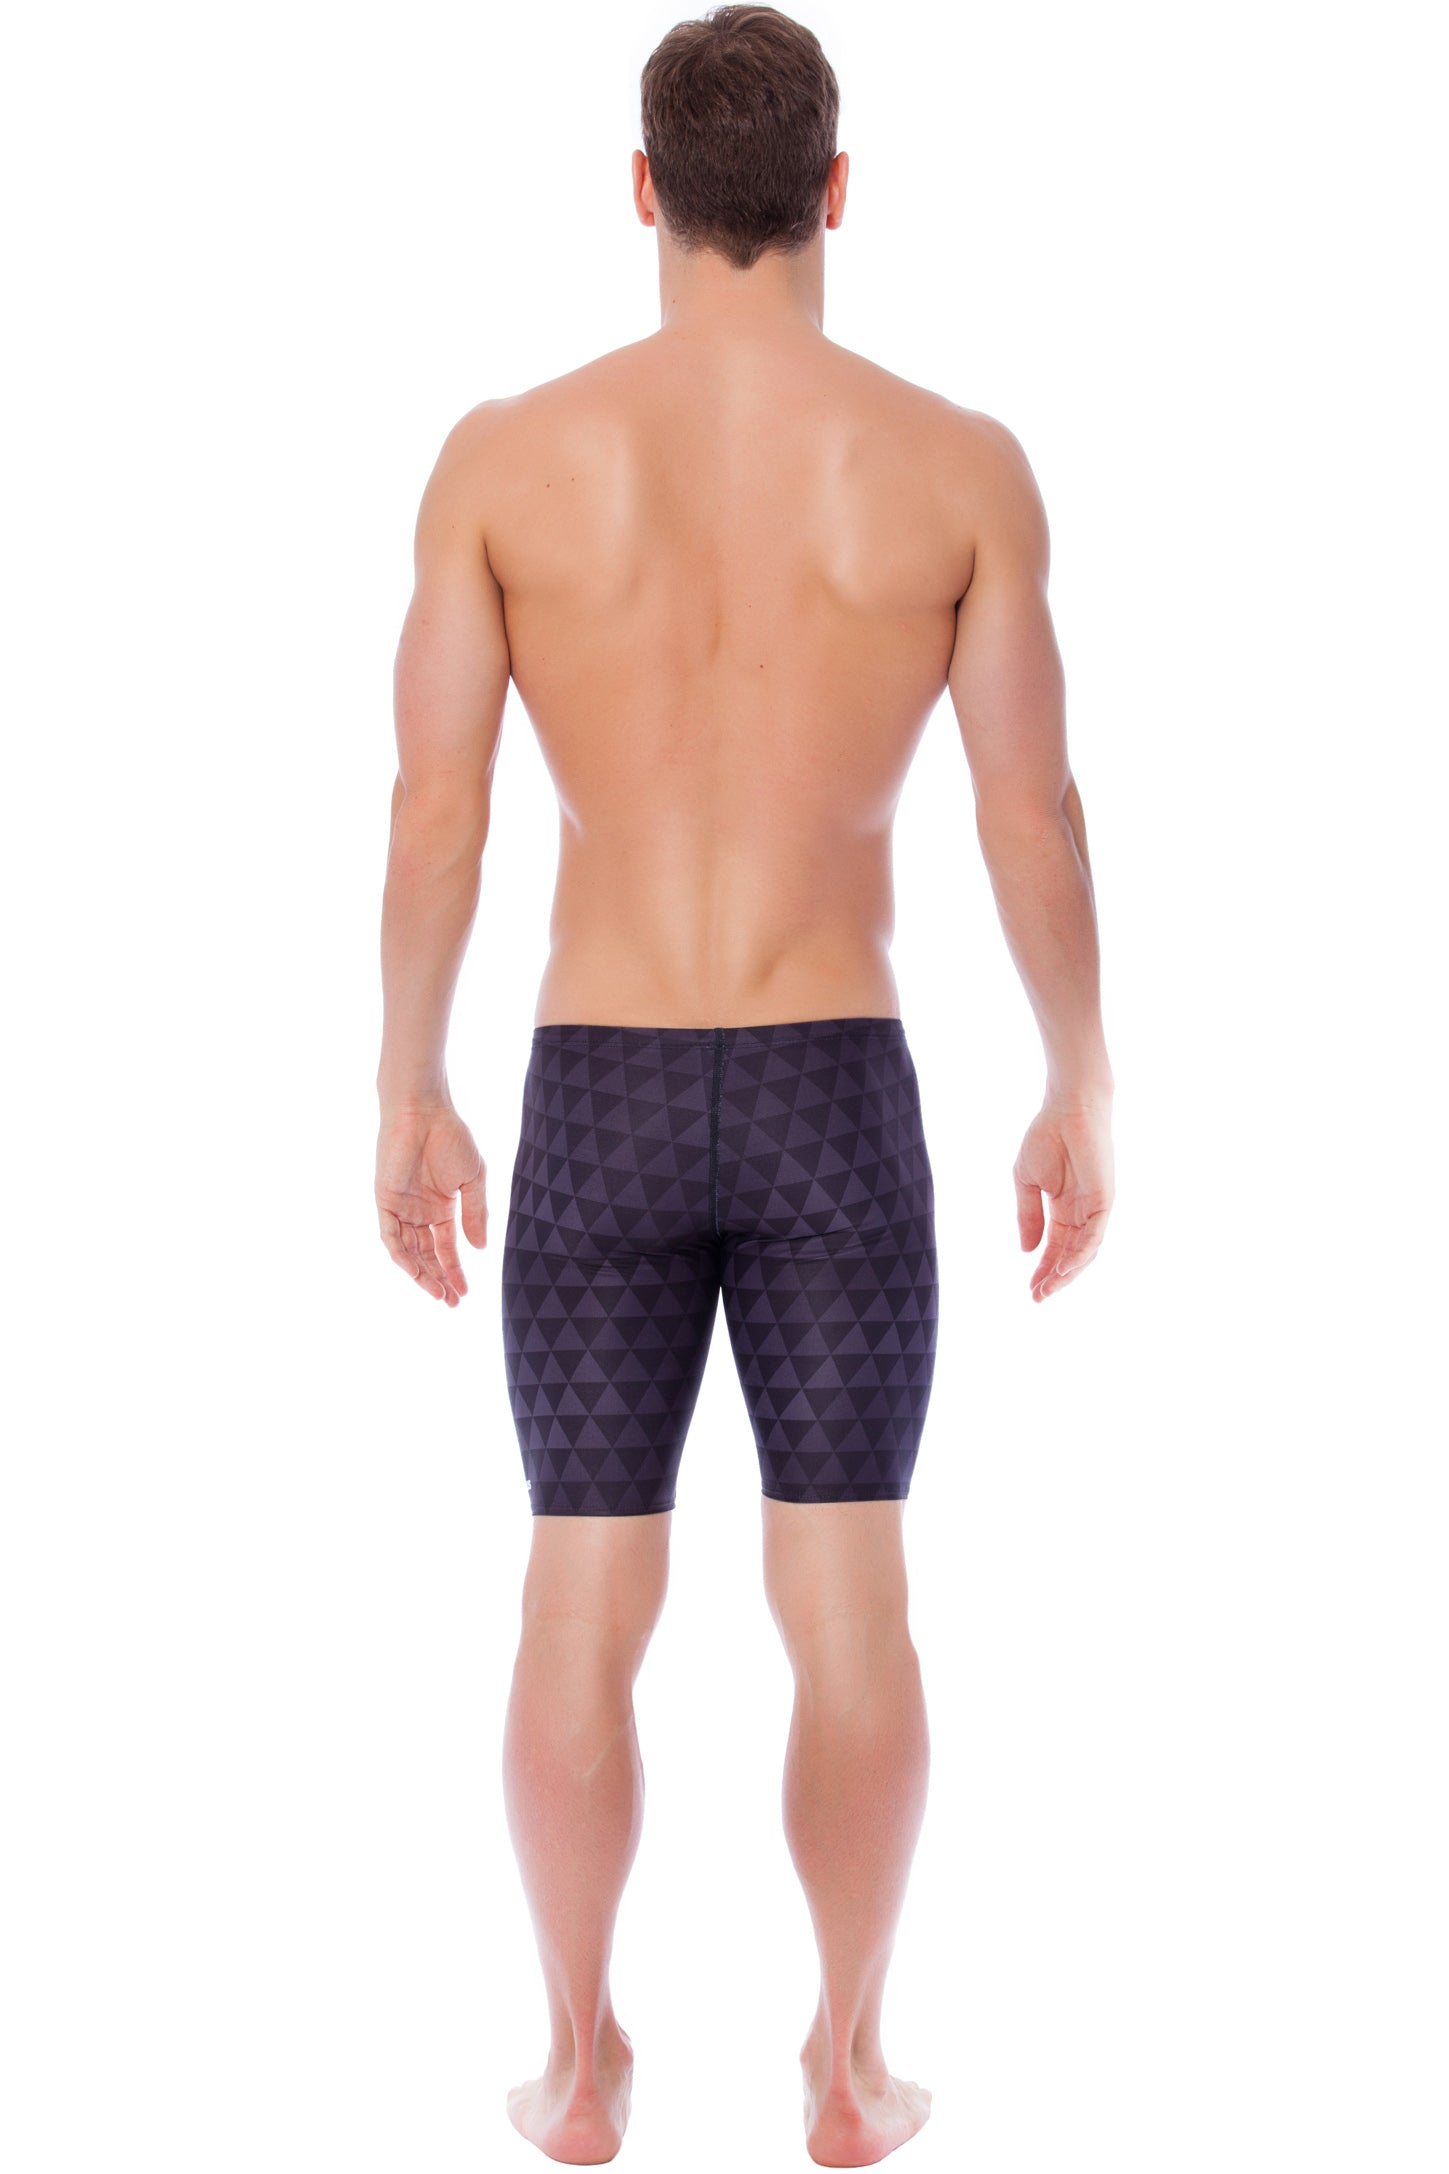 Titanium Men's Jammers - Shop Zealous Training Swimwear